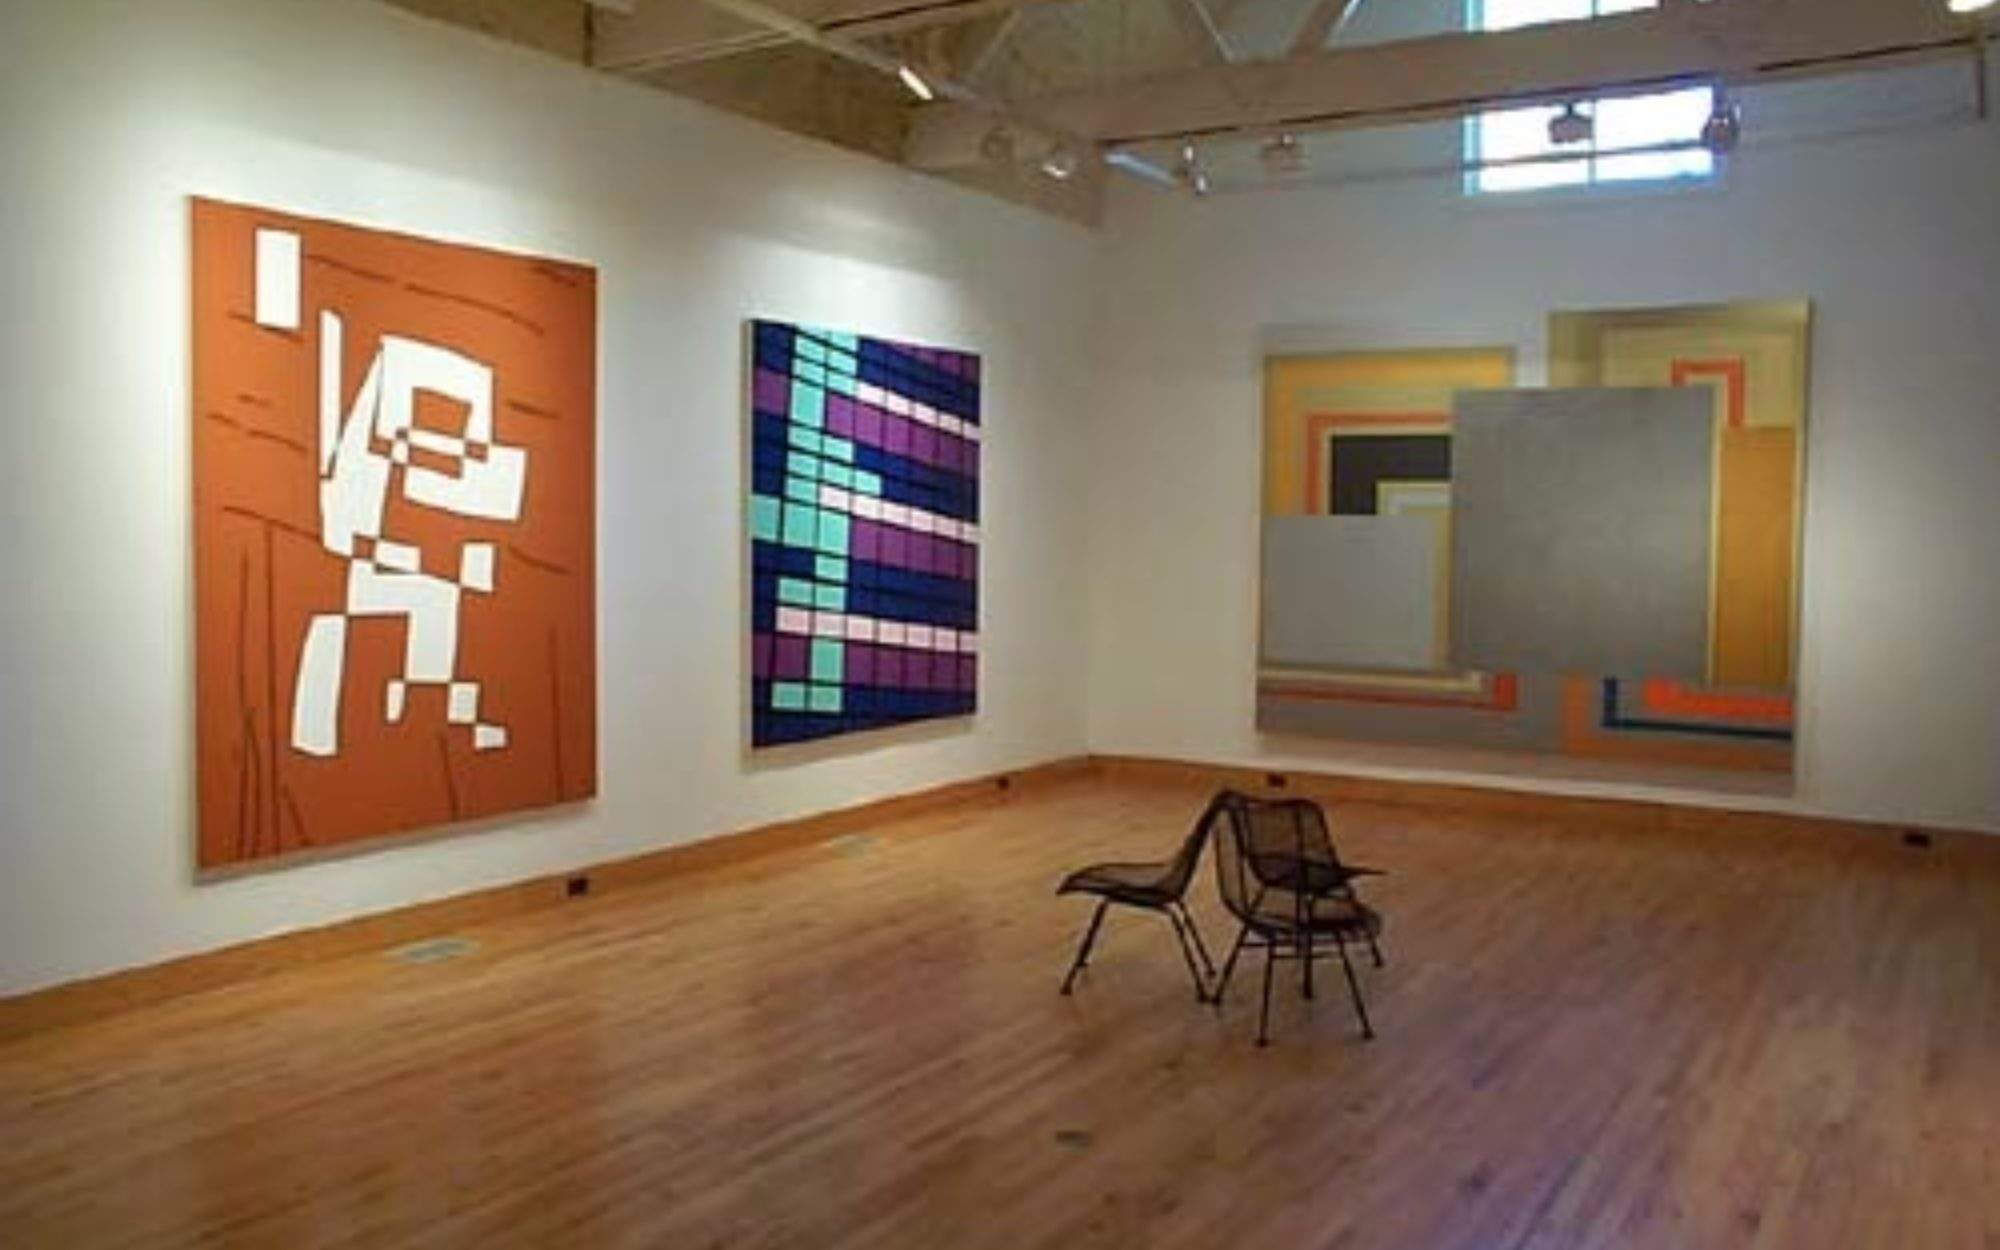 Installation view of Glee: Painting Now